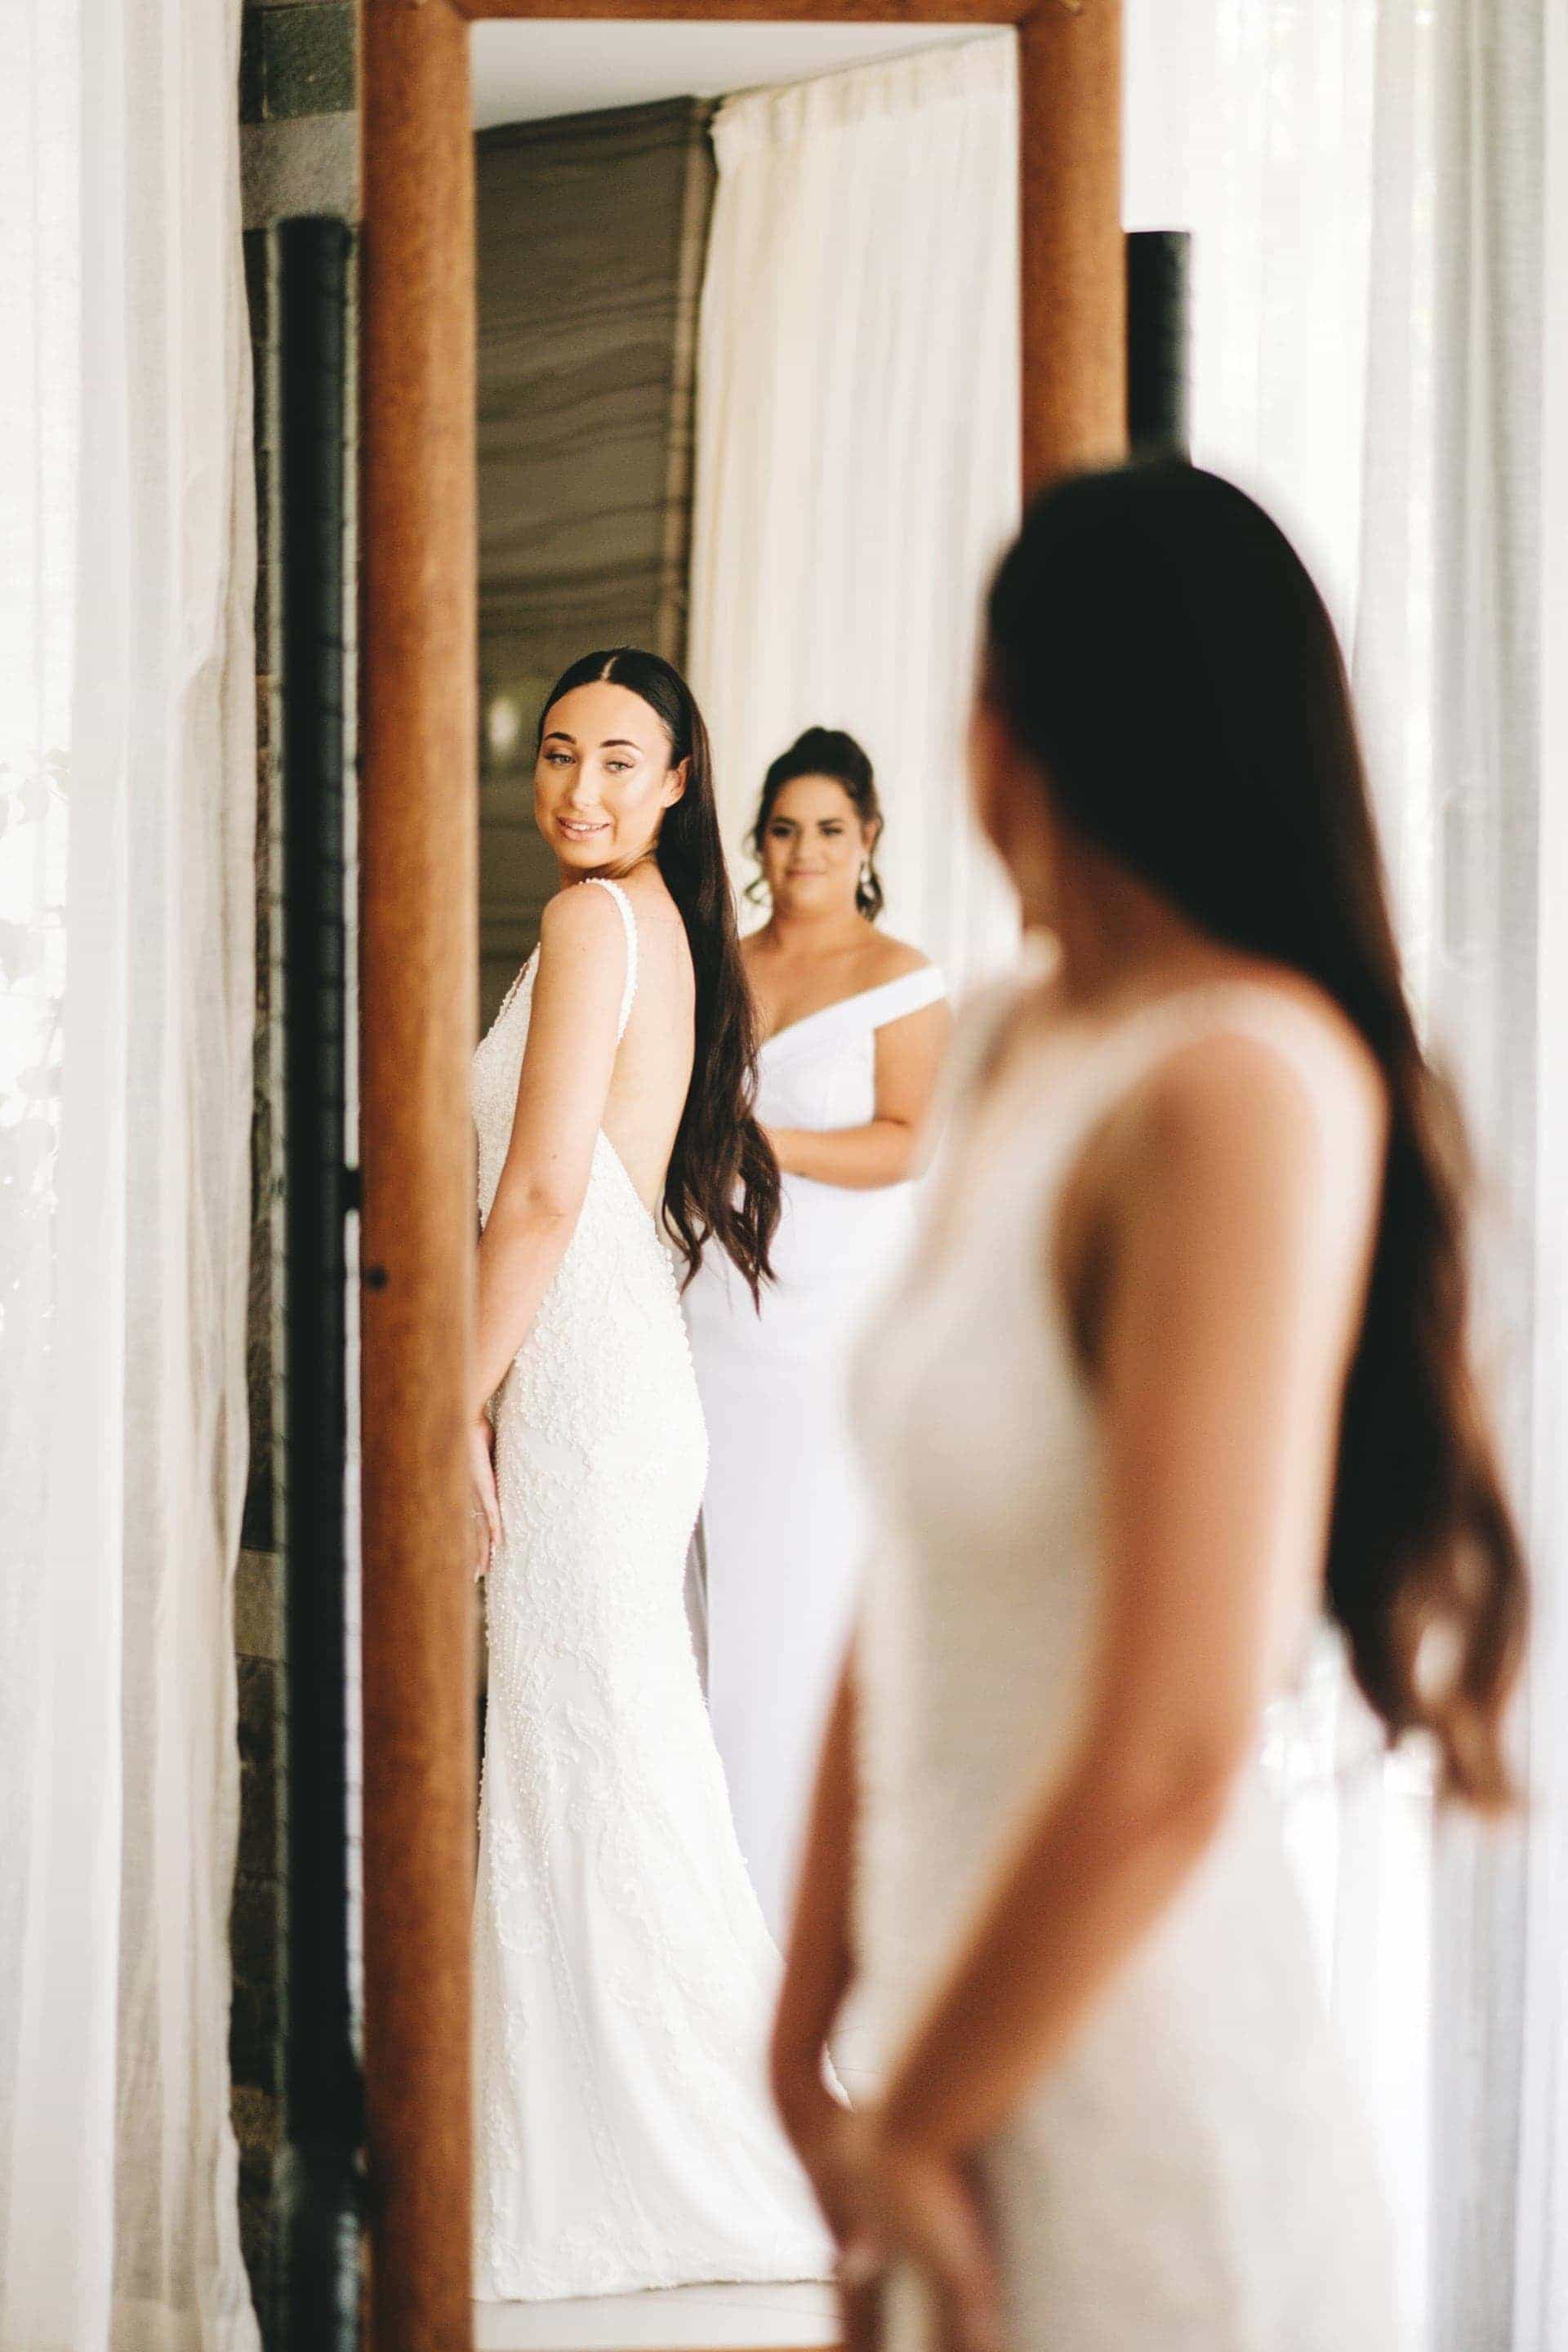 the bride looking at herself in the mirror as her bridesmaid looks on